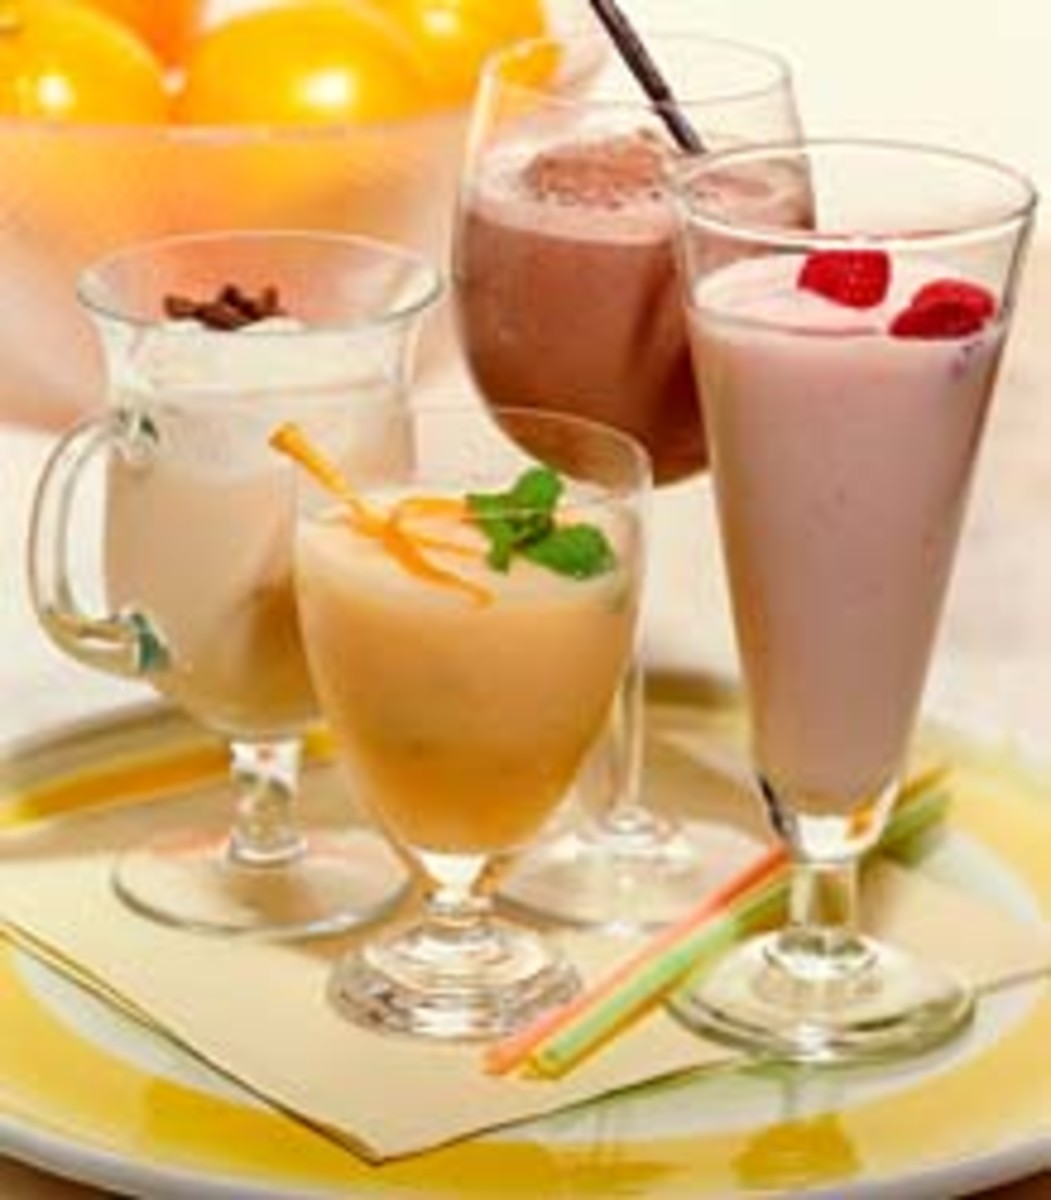 Blended Drinks & Alcoholics Smoothies Recipes